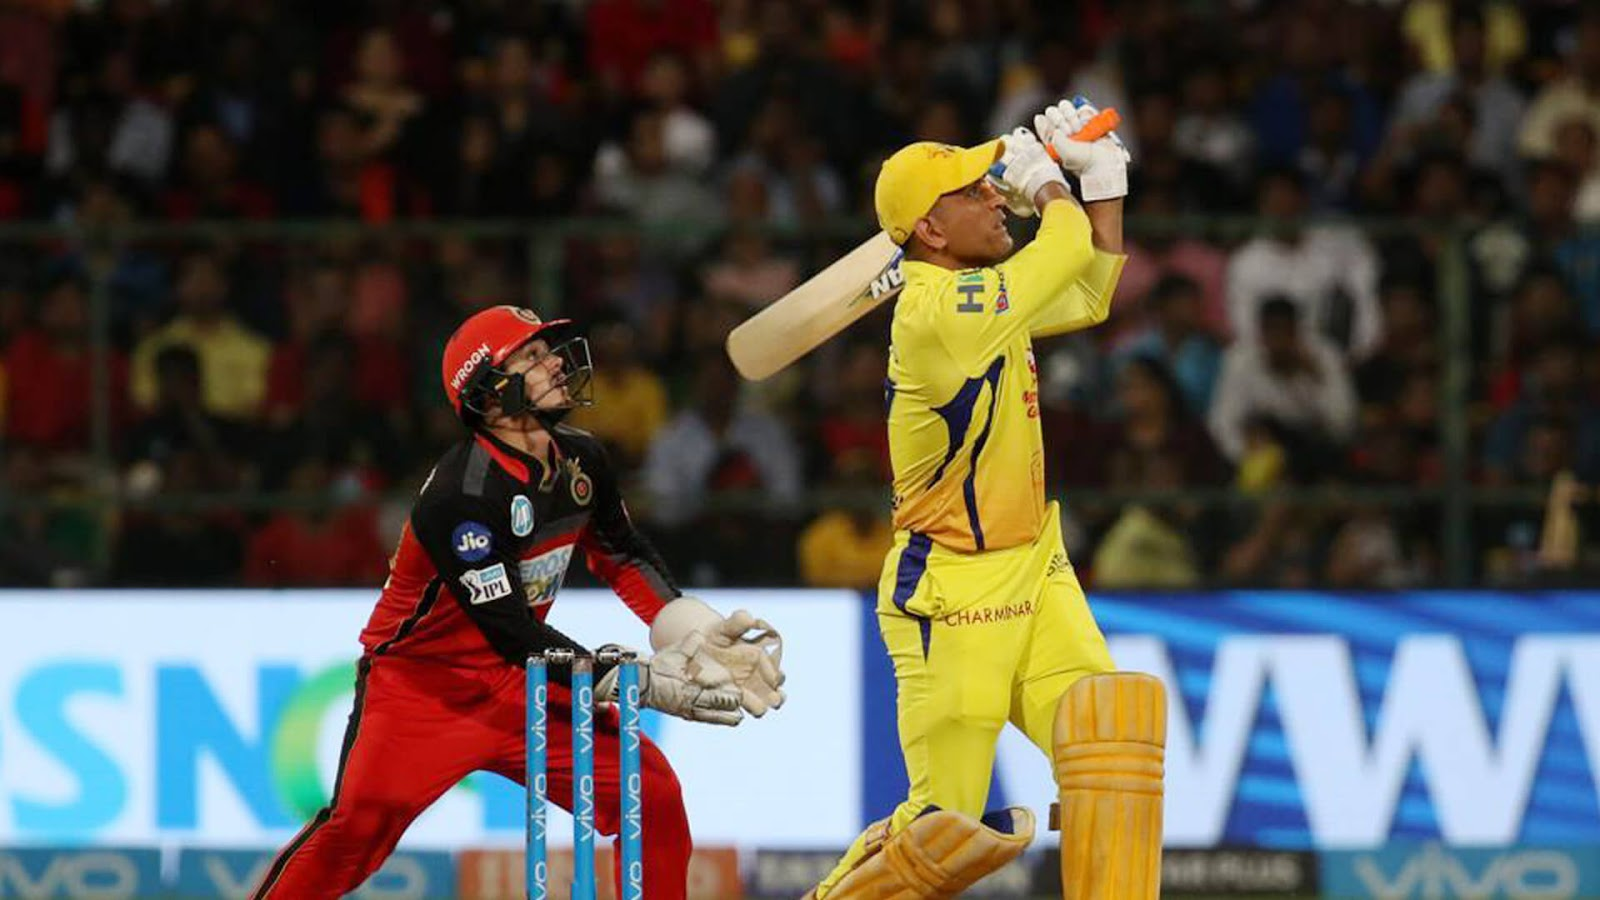 Chennai Super Kings HD Wallpapers Download Free 1080p